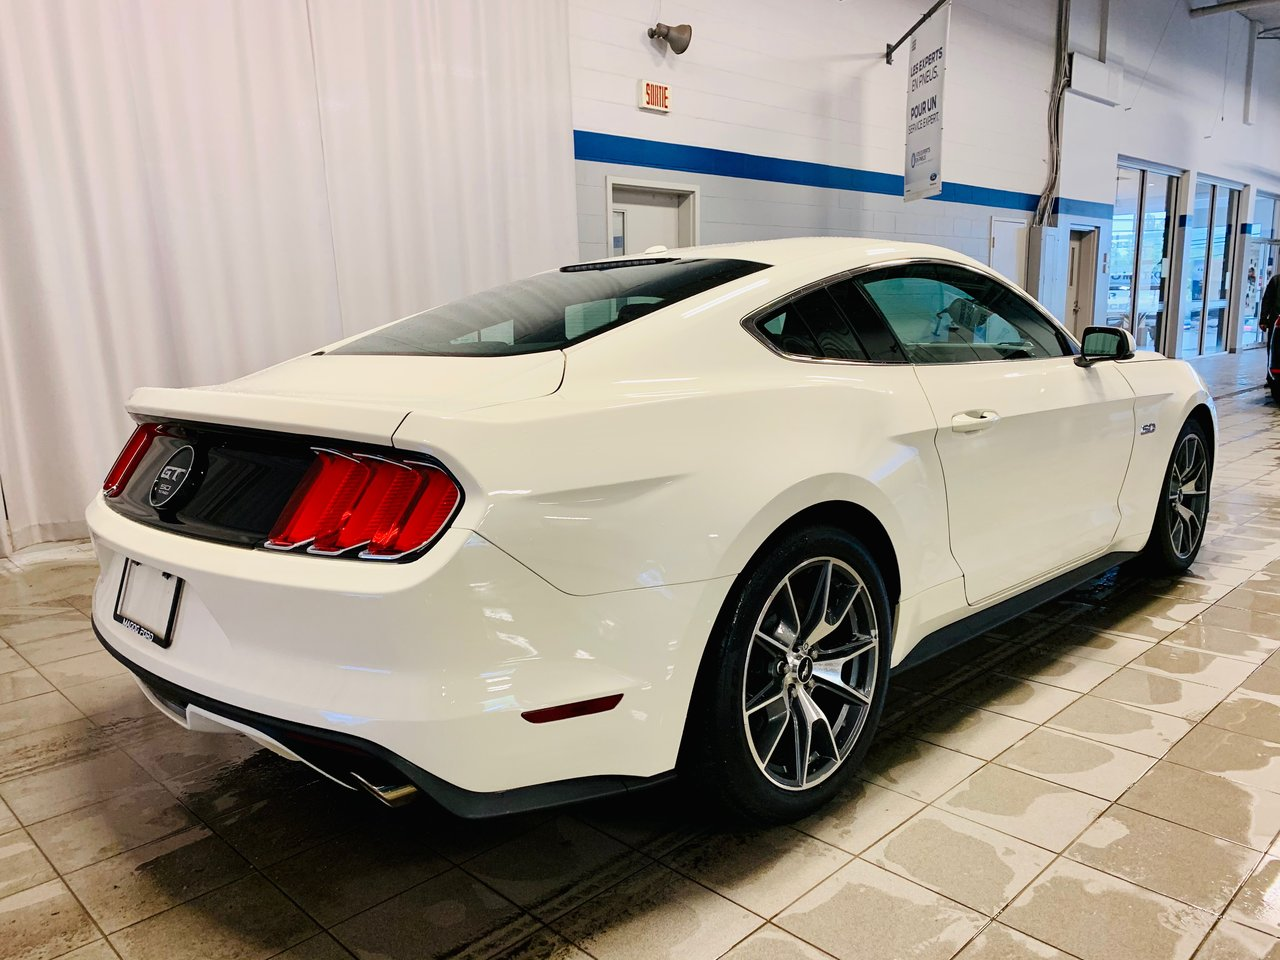 2015 Ford Mustang 2dr Fastback GT 50 Years Limited Edition / 0 ACCID